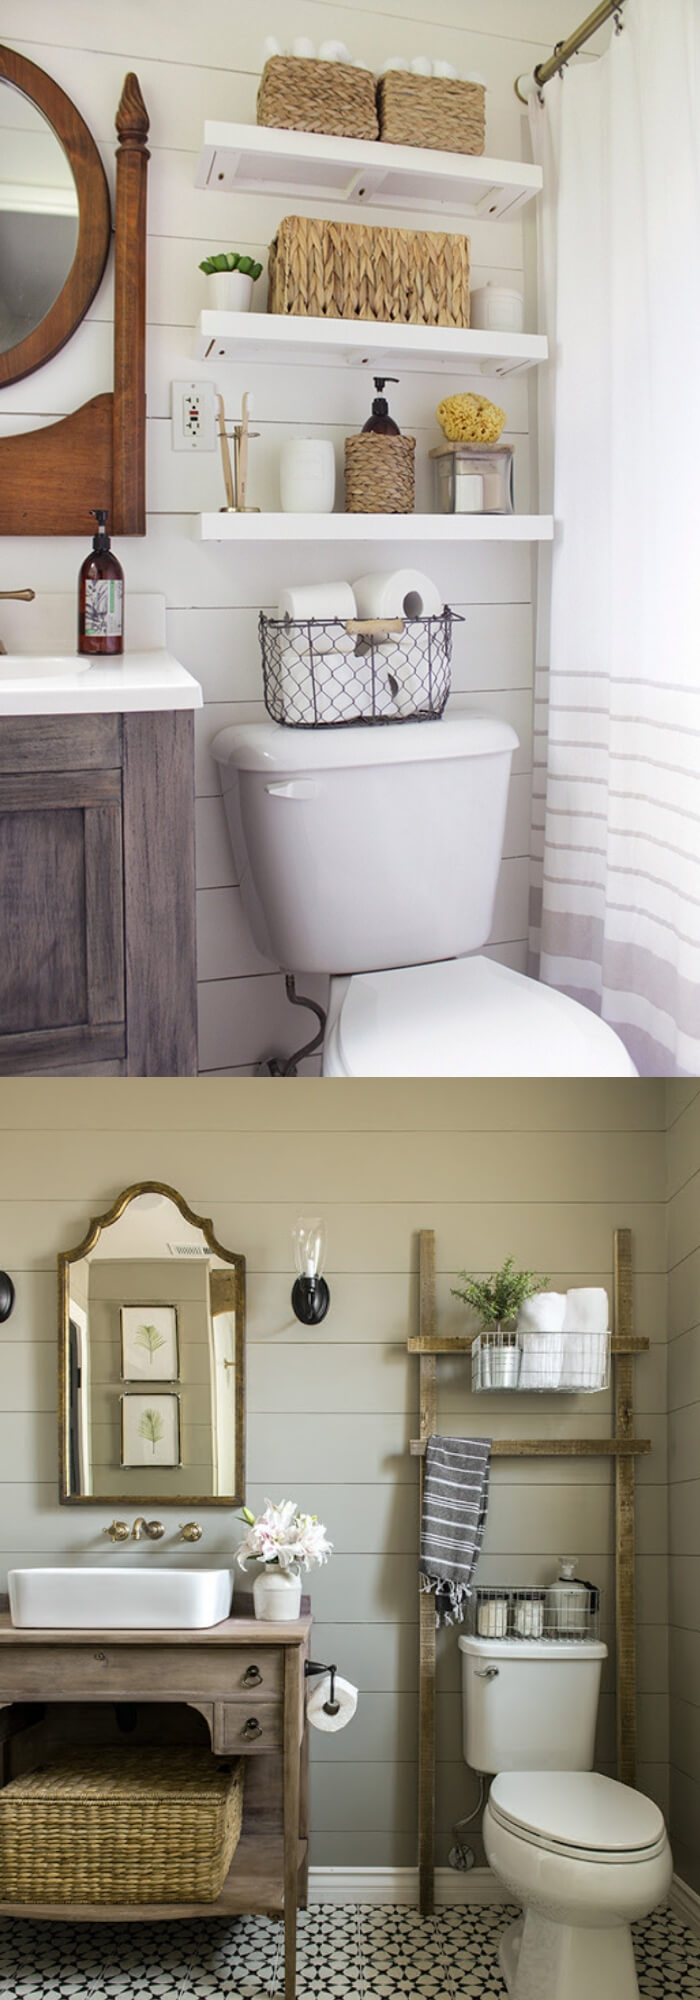 Cozy vintage feel (mixed rustic wood features into bathroom) | Best Small Bathroom Storage Designs & Ideas